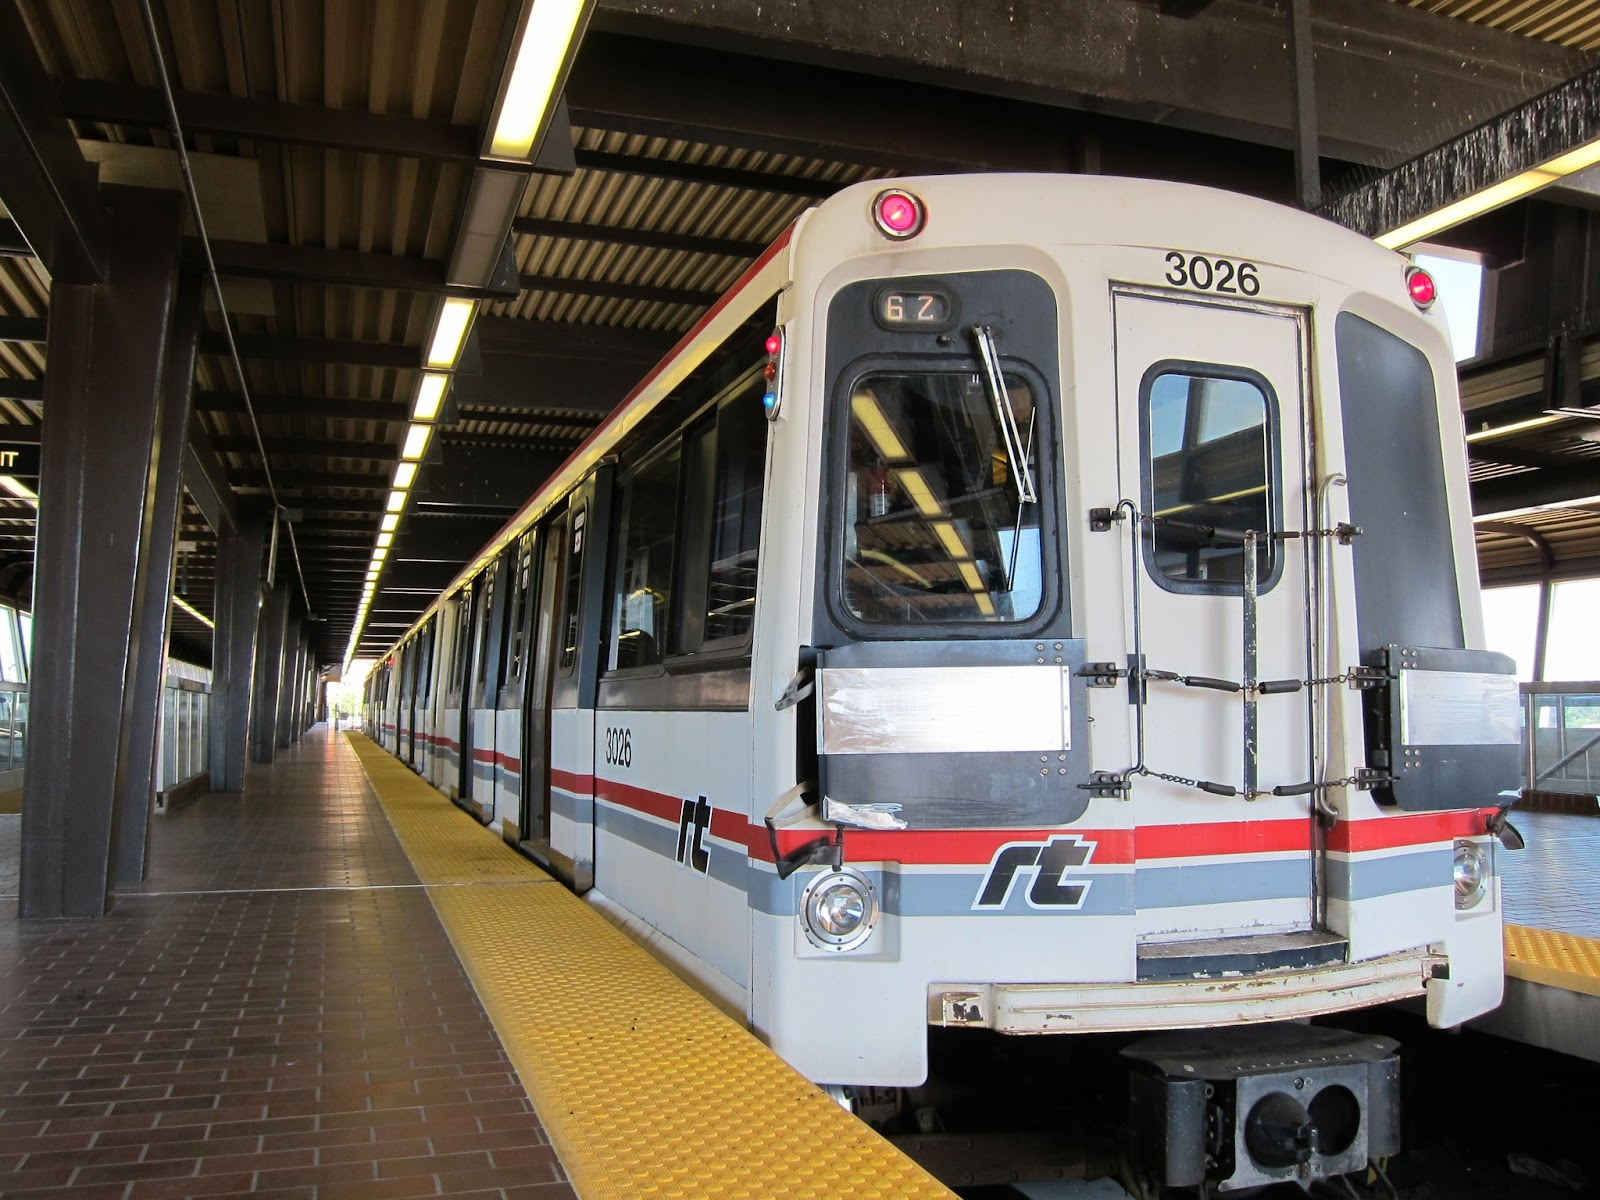 Scarborough RT train at Kennedy station